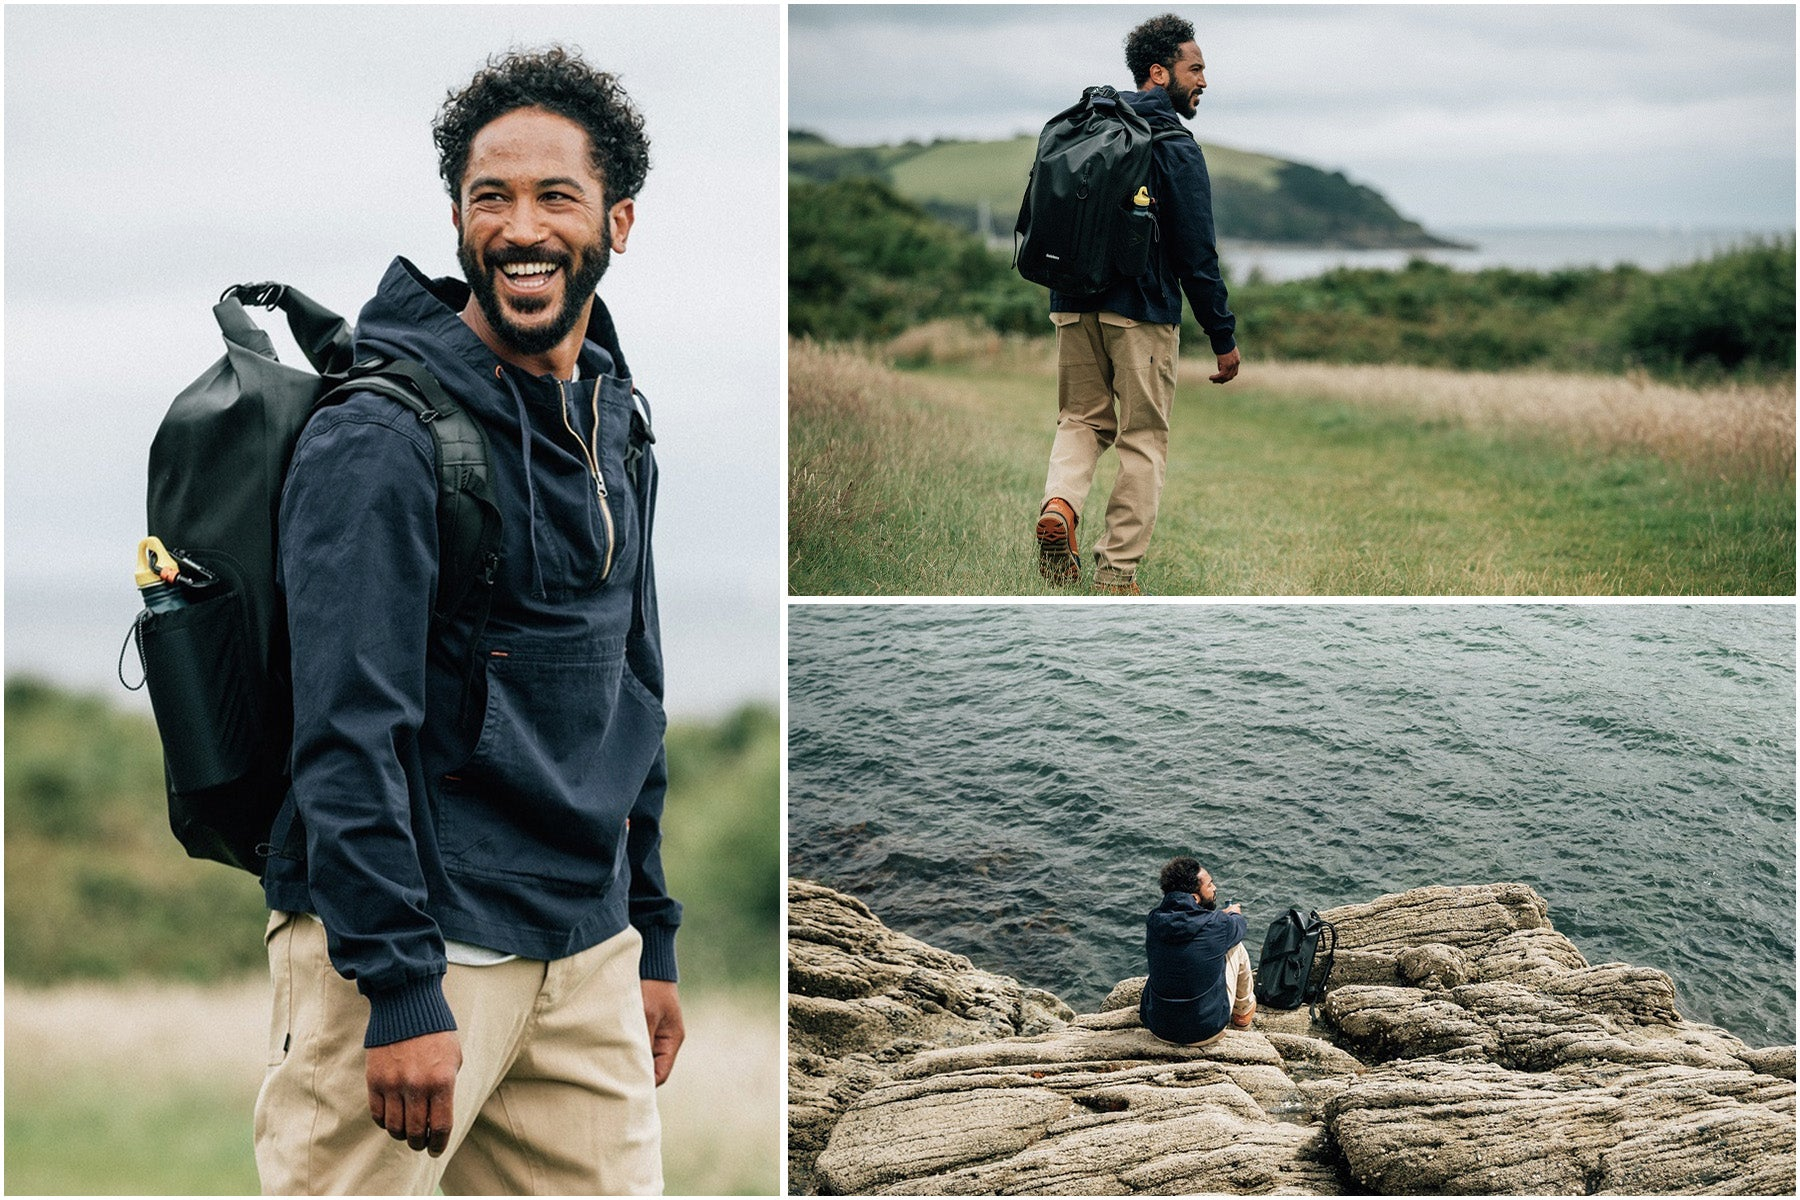 Sean White sets out for his days adventure with the drift backpack and lenting smock